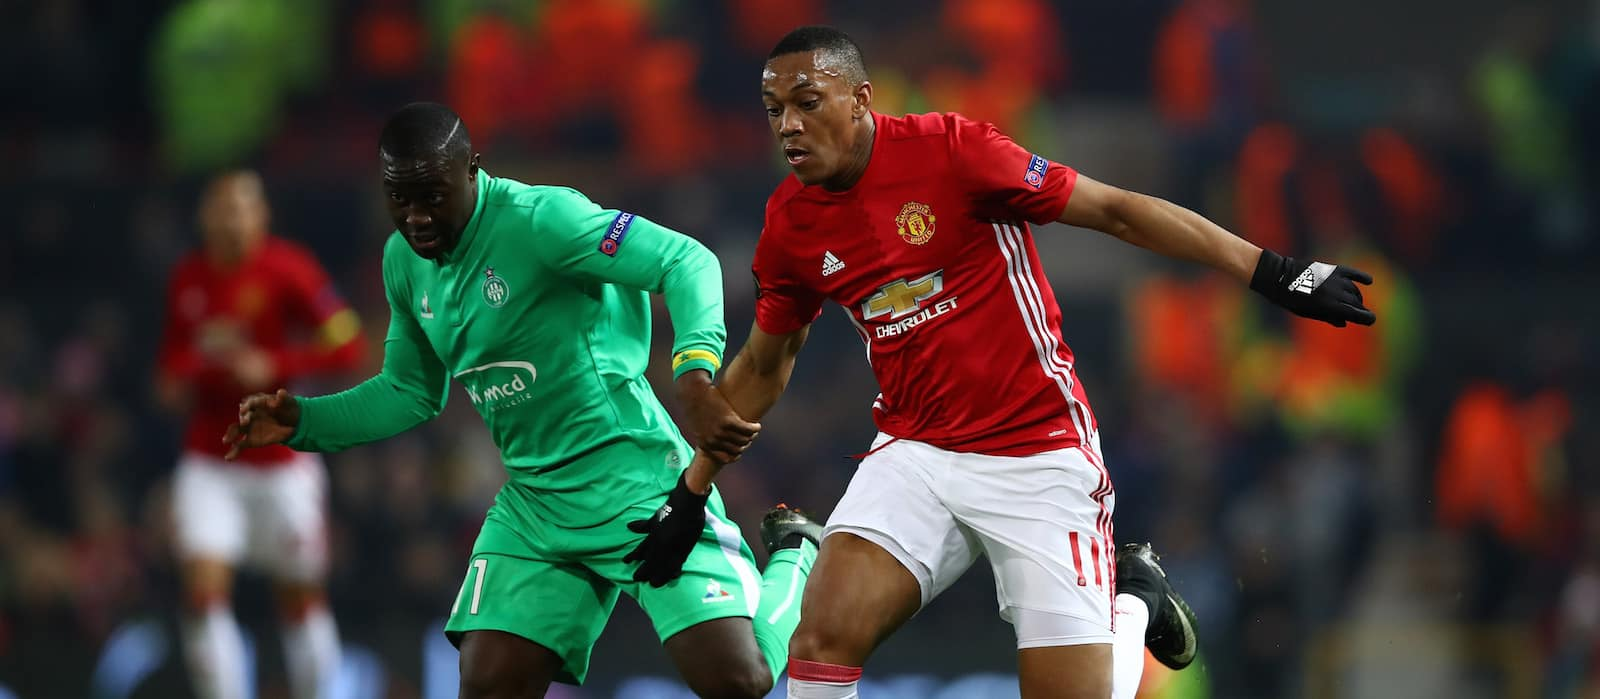 Anthony Martial shows against St. Etienne that he's back in business for Manchester United